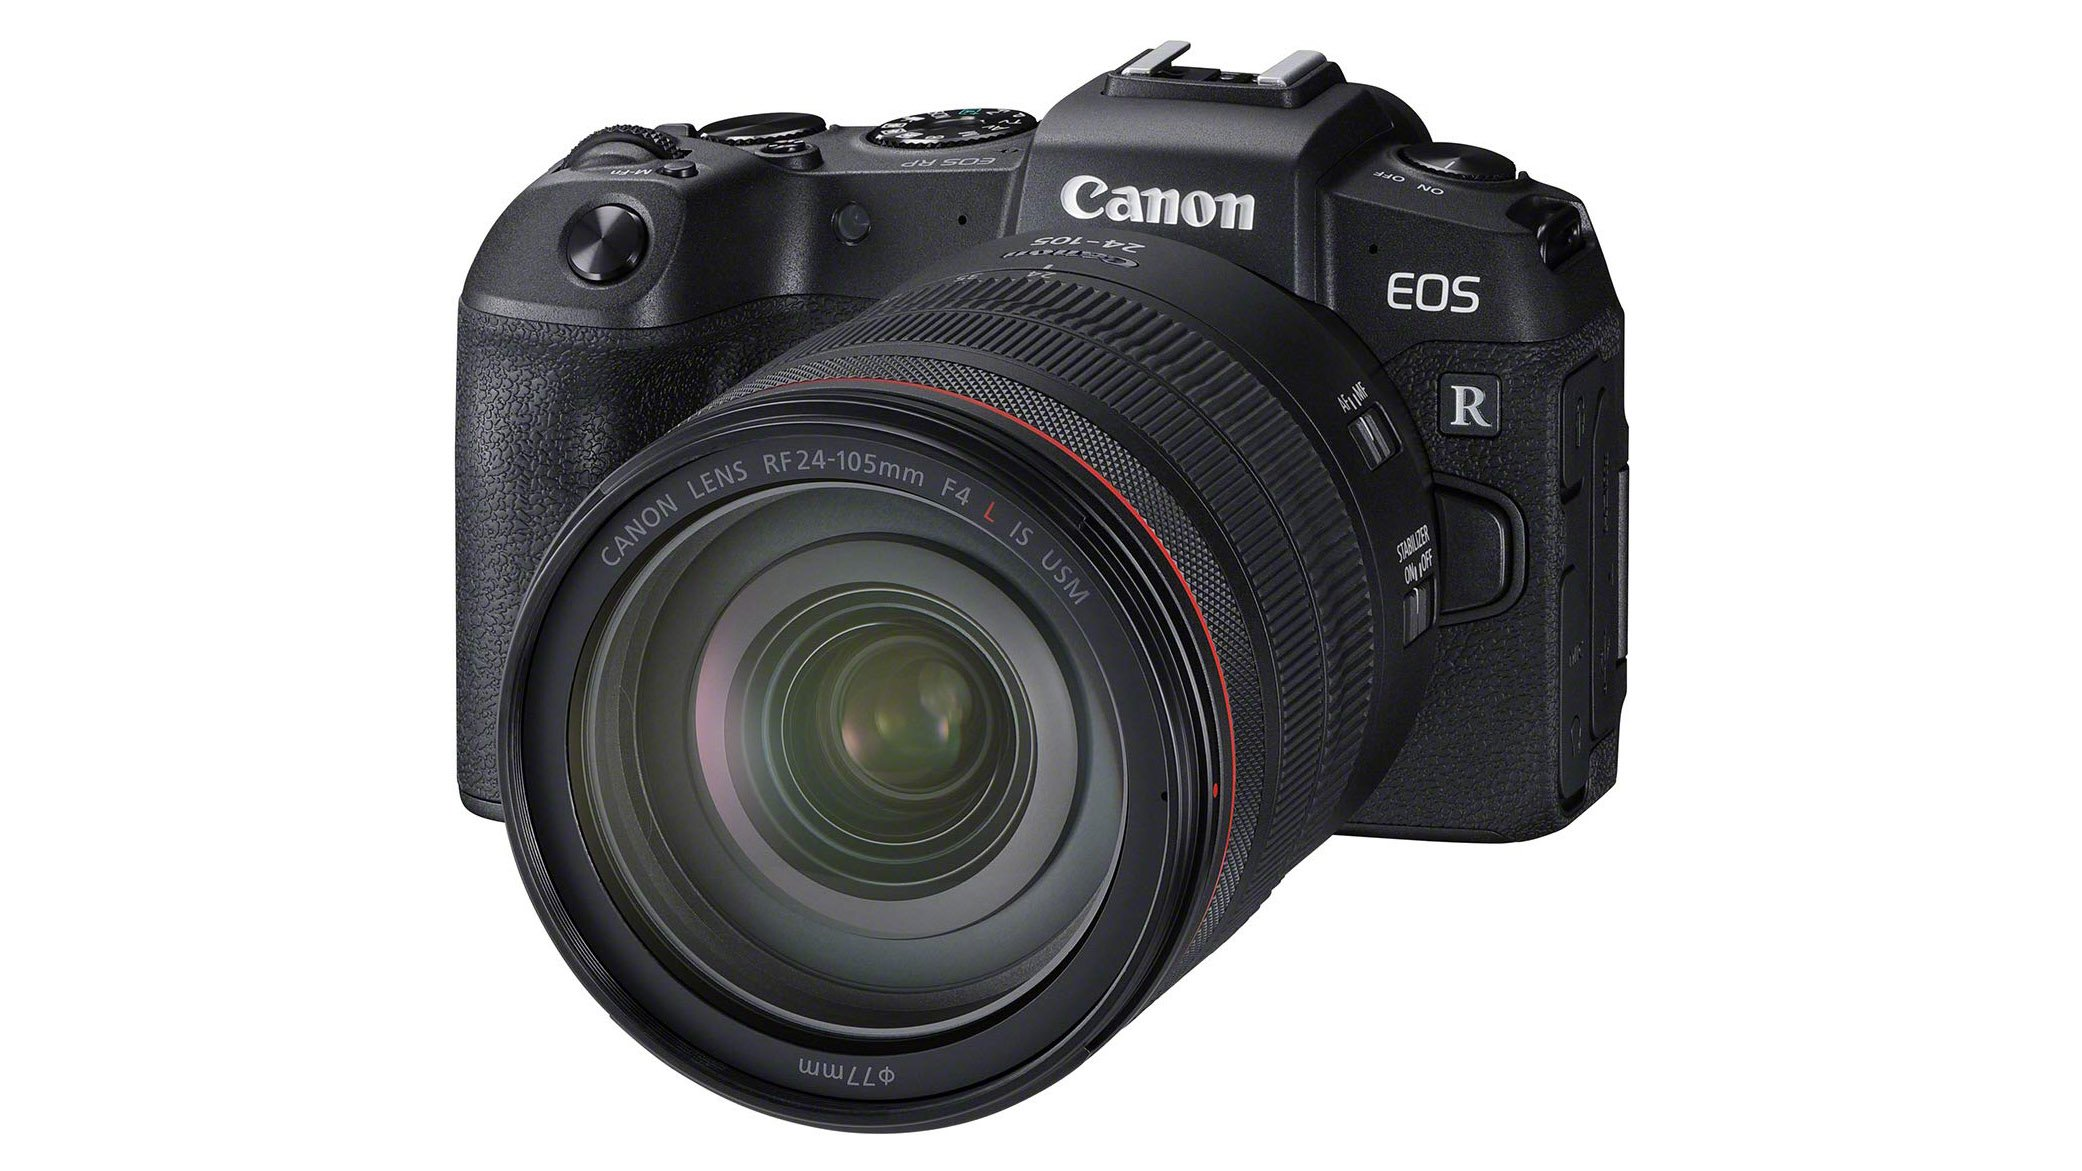 Canon EOS RP review: An affordable route into full-frame photography